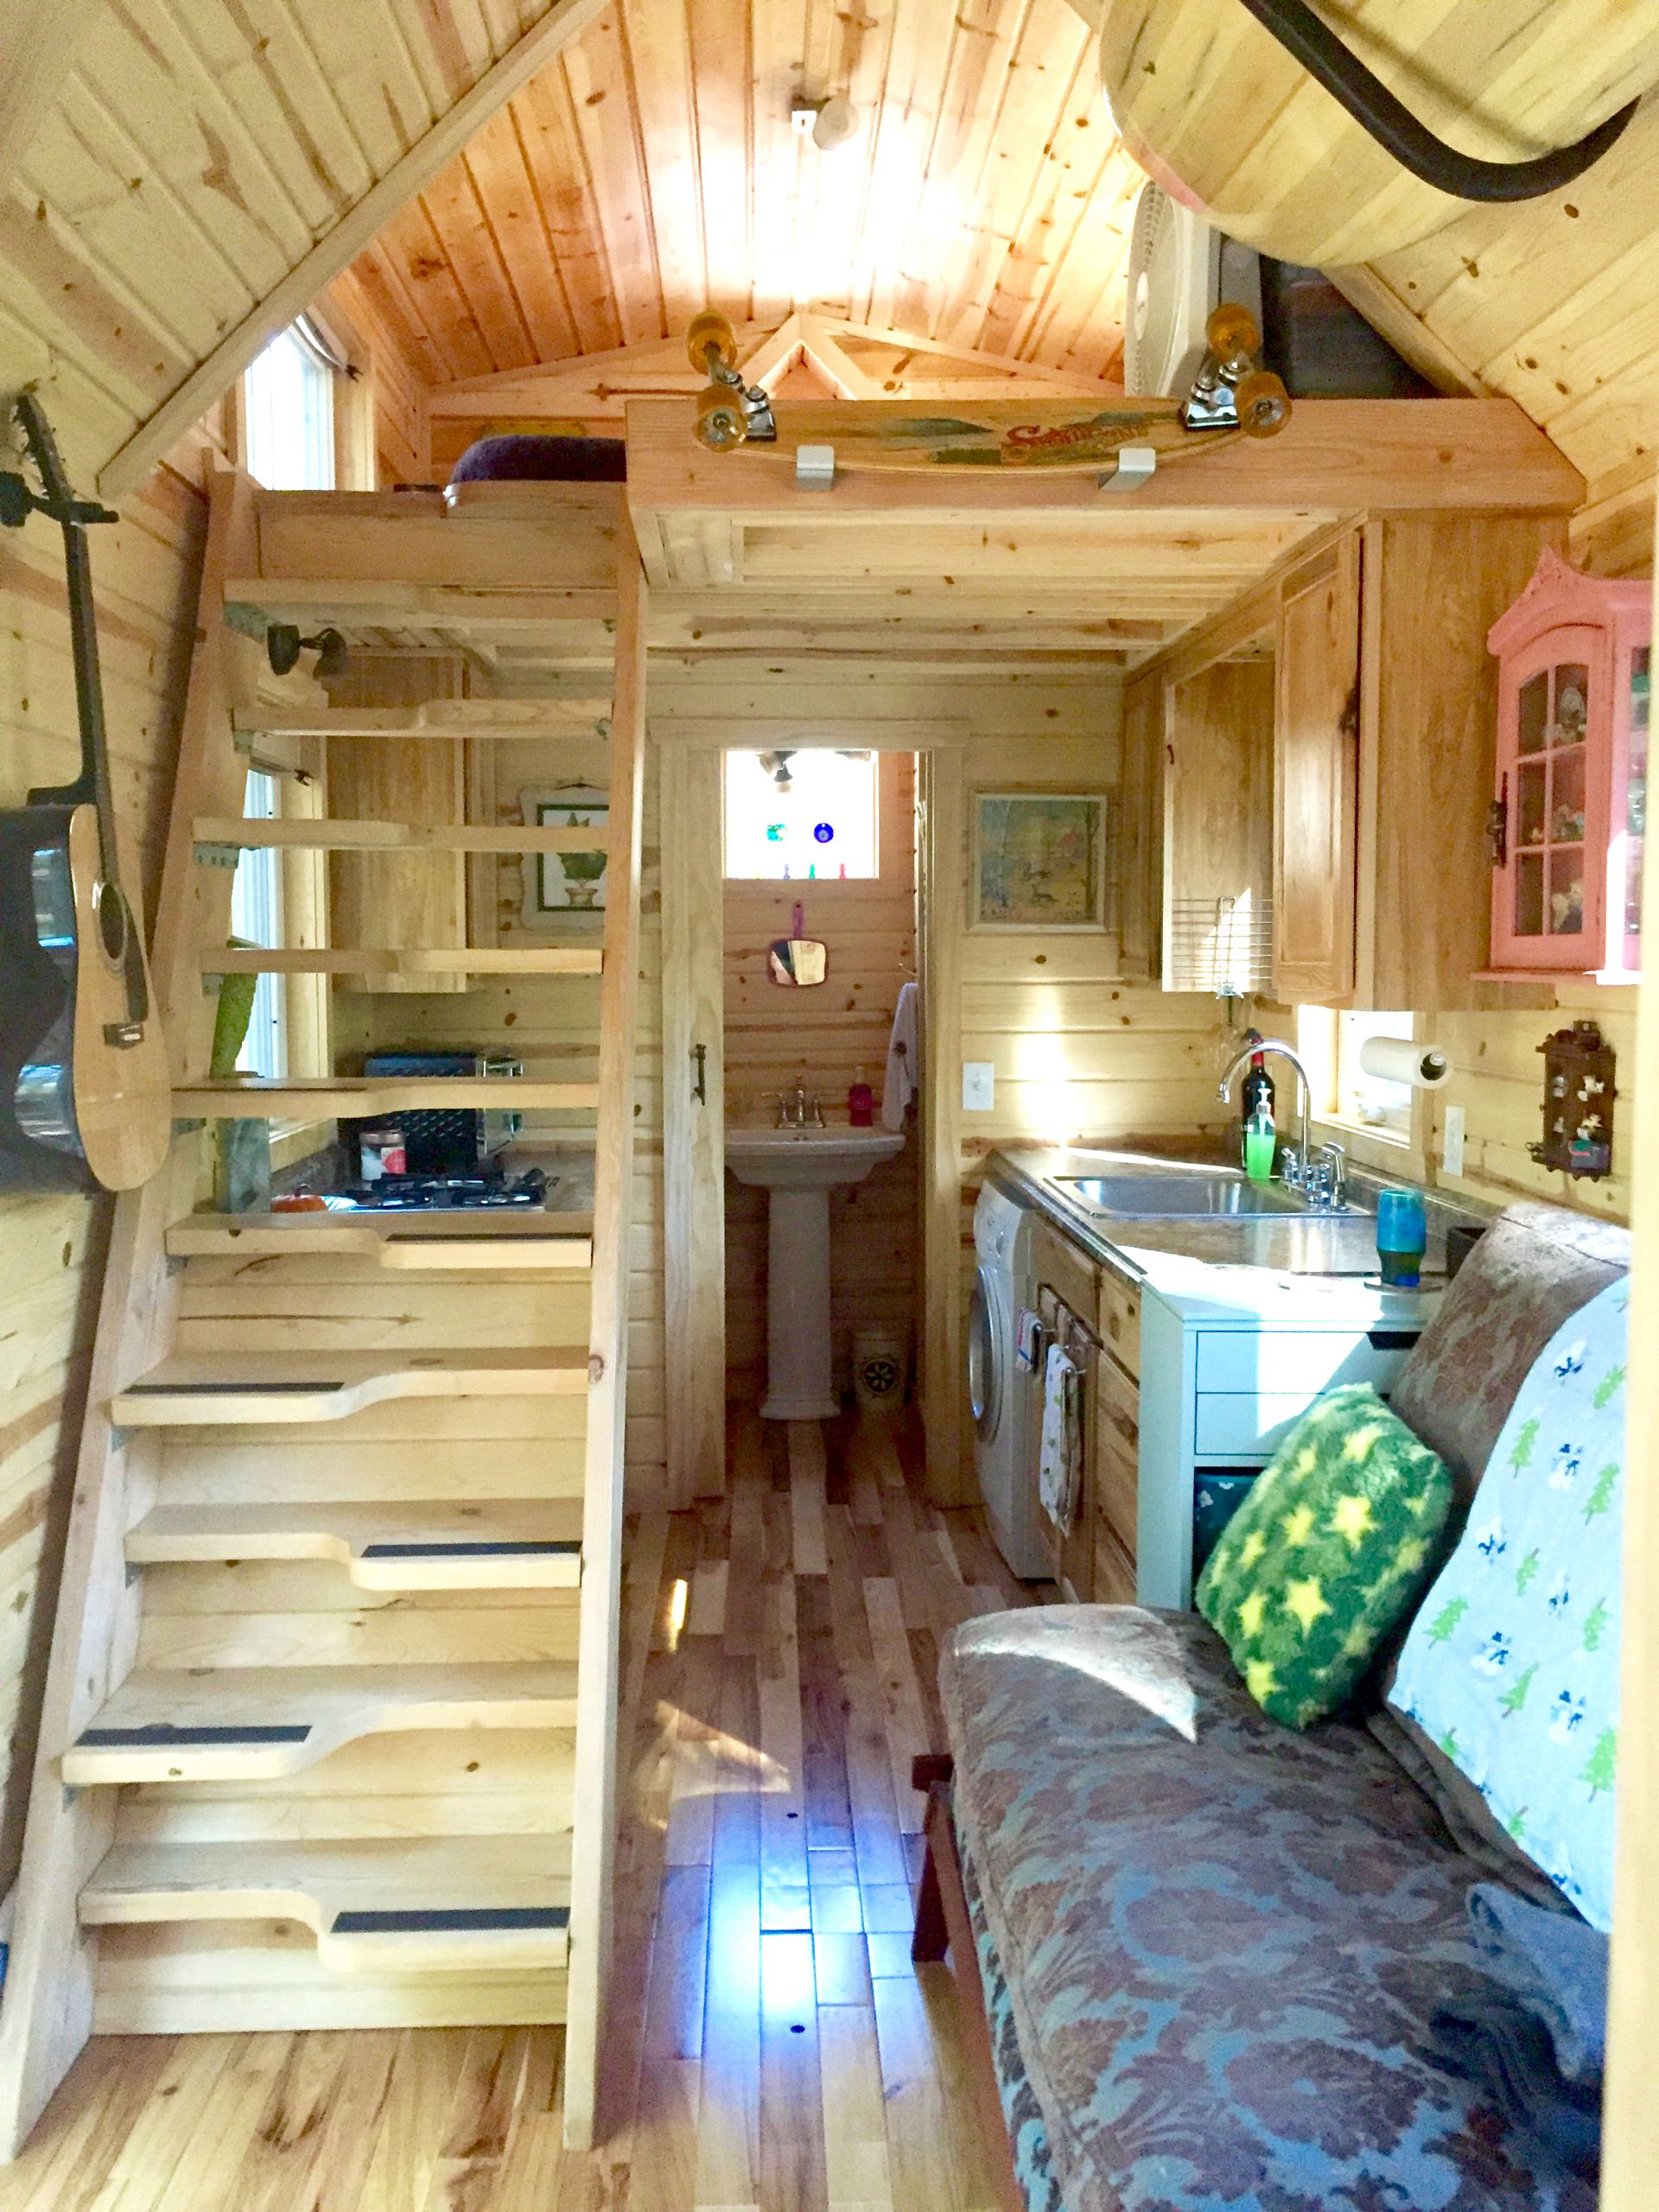 Tiny House Interieur Nicki 39s Colorful Victorian Tiny House After One Year